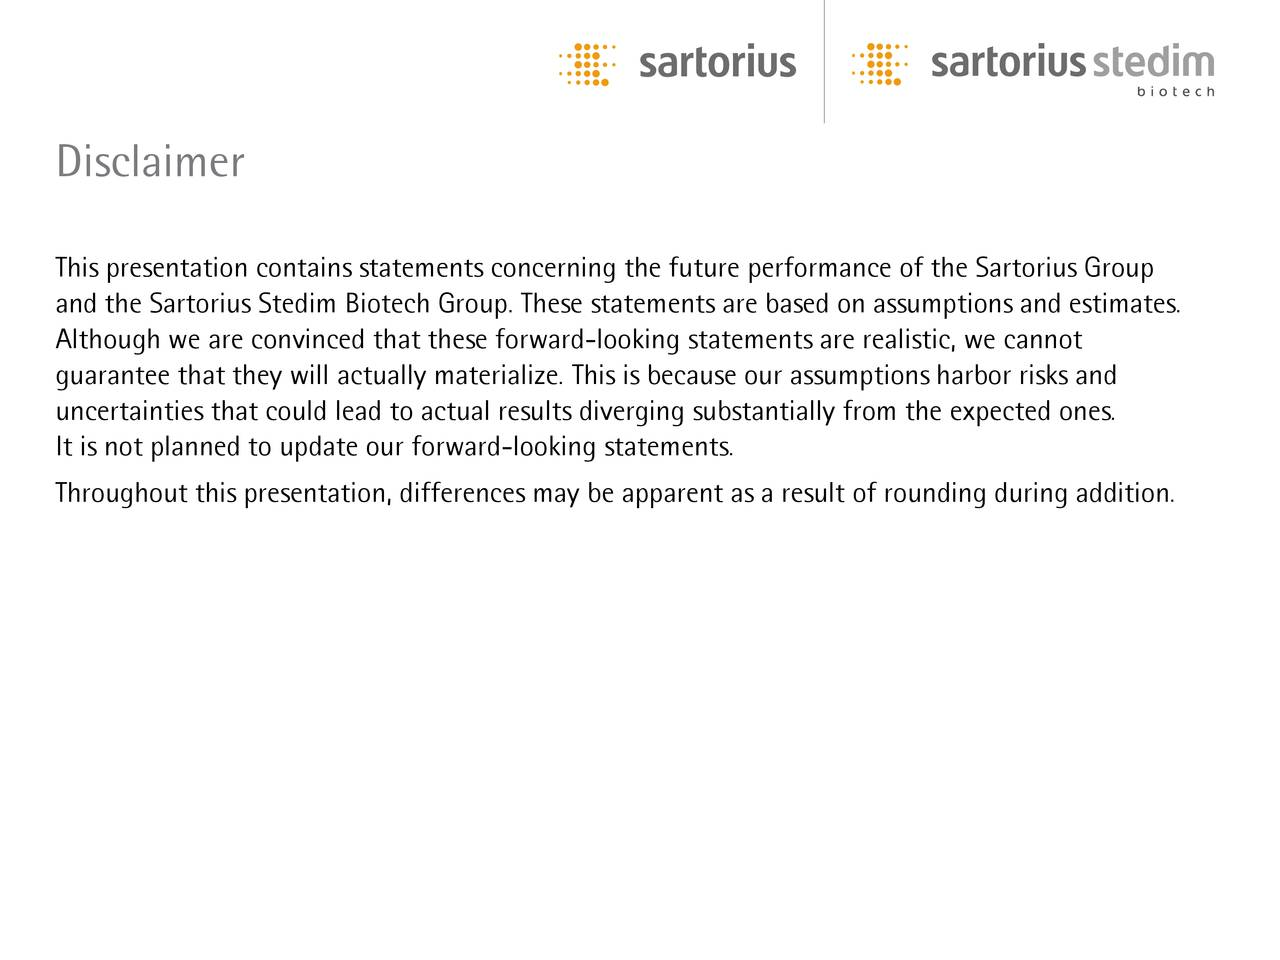 This presentation contains statements concerning the future performance of the Sartorius Group and the Sartorius Stedim Biotech Group. These statements are based on assumptions and estimates. Although we are convinced that these forward-looking statements are realistic, we cannot guarantee that they will actually materialize. This is because our assumptions harbor risks and uncertainties that could lead to actual results diverging substantially from the expected ones. It is not planned to update our forward-looking statements. Throughout this presentation, differences may be apparent as a result of rounding during addition.